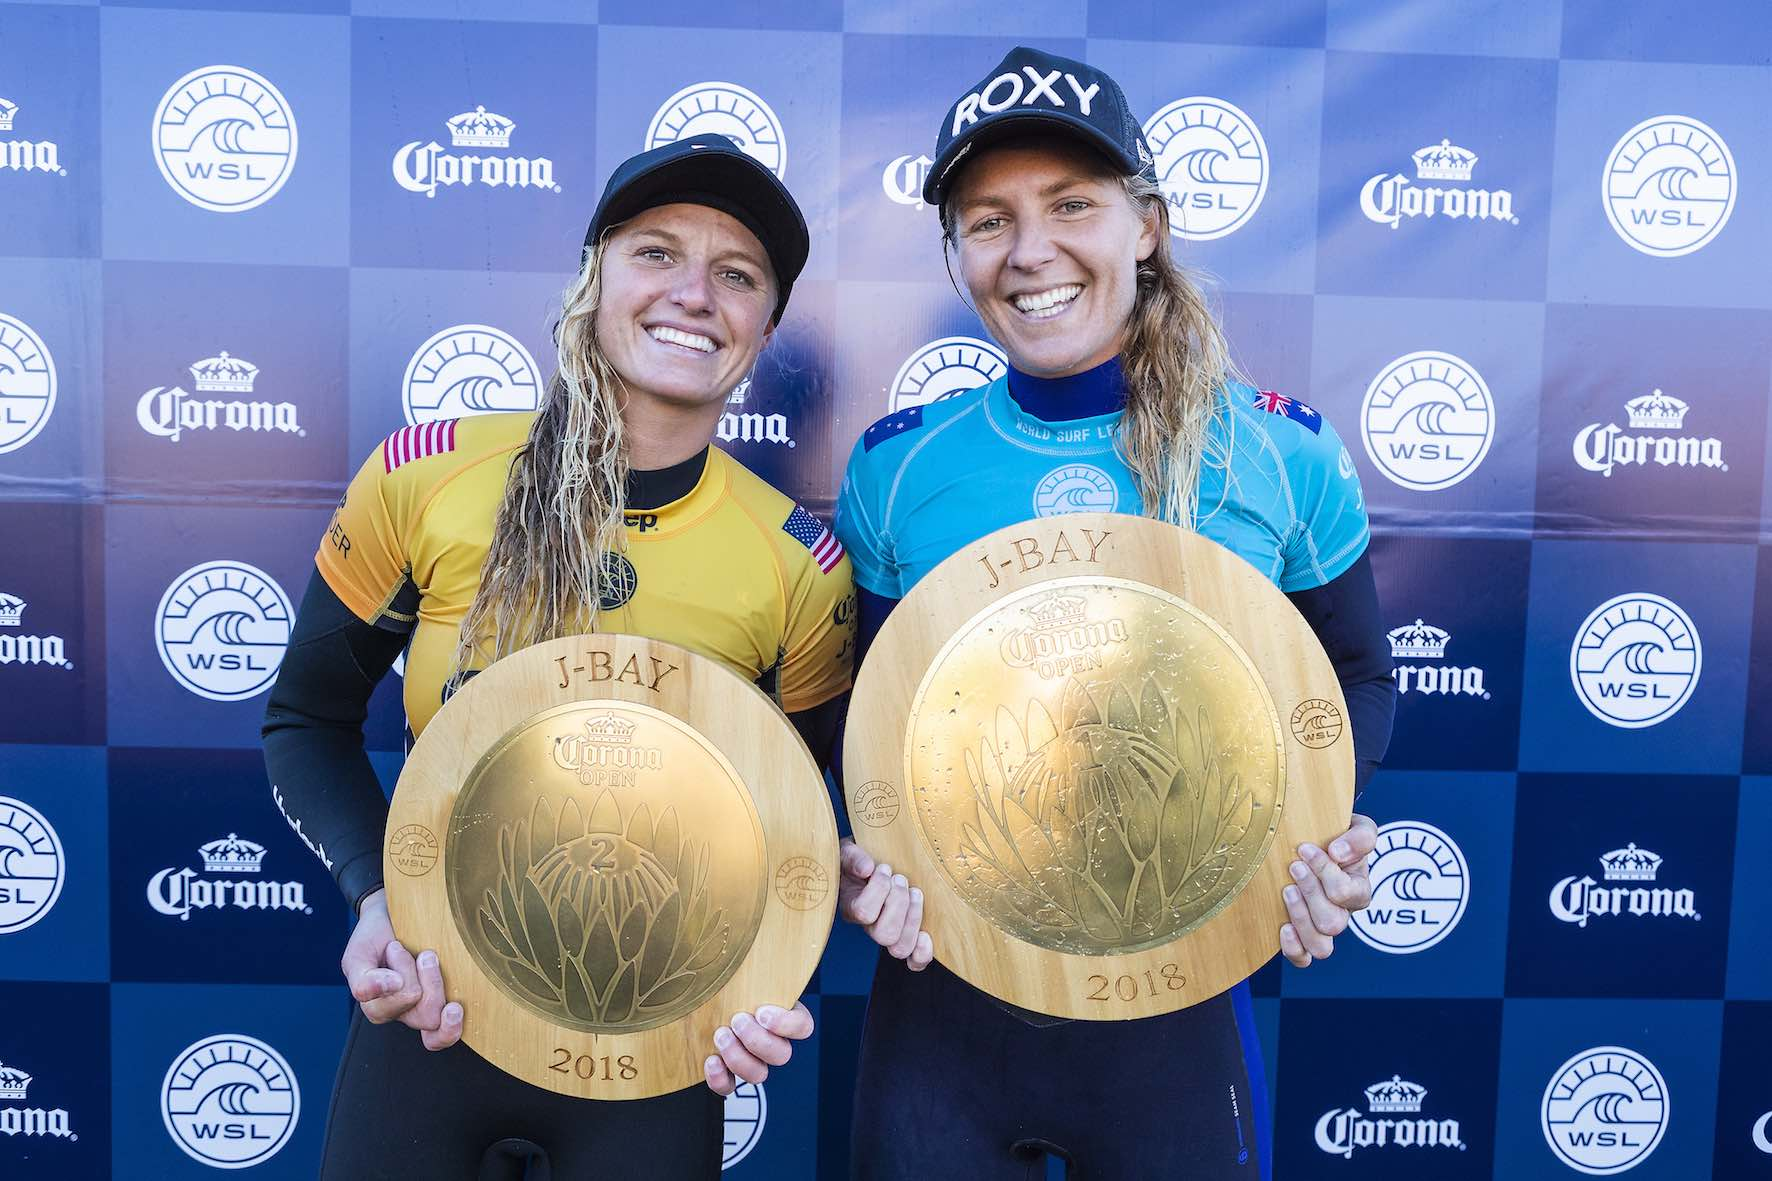 2018 Corona Open J-Bay Women's podium